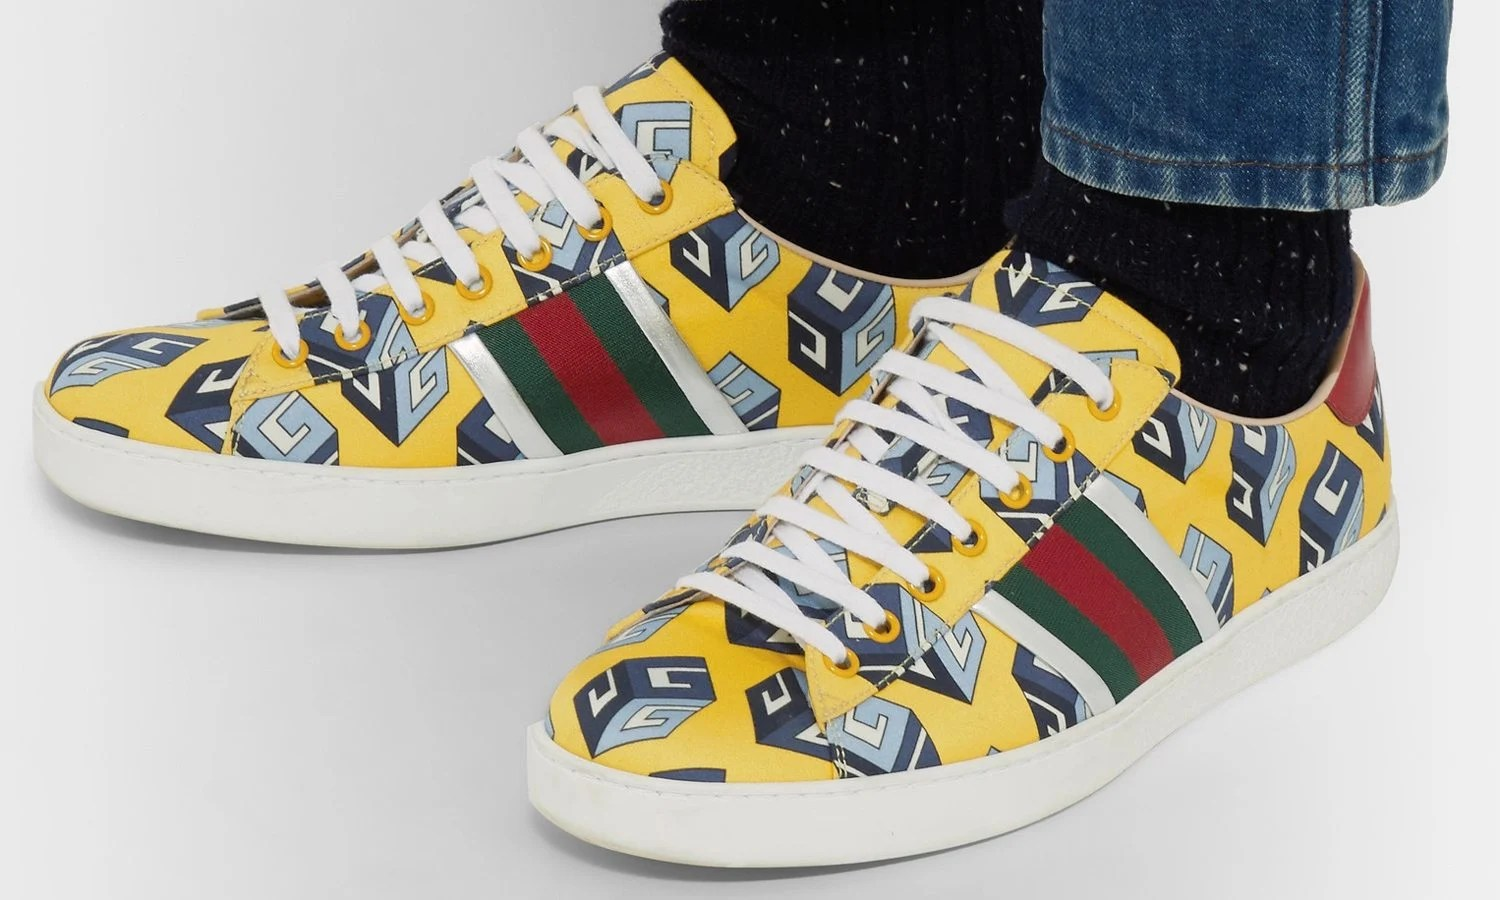 59f1caad9 Gucci Partners with MR. PORTER on the Ace for an Online Exclusive ...